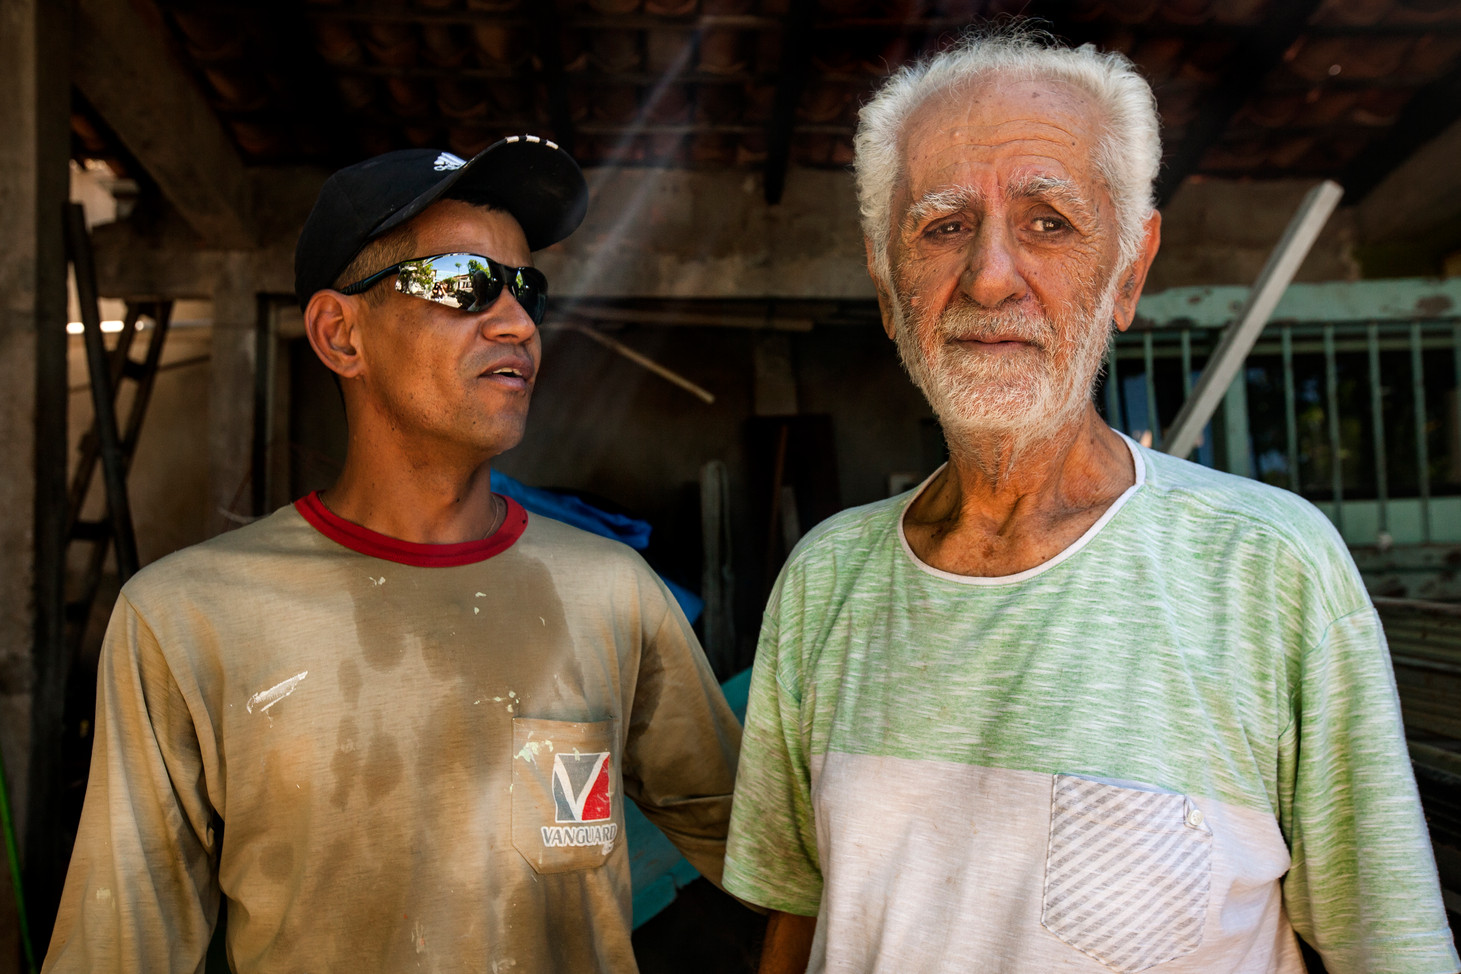 Nilson (Left) speaks with his boss, an immigrant to Brazil from Lebanon. Many immigrants ventured to Brazils interier during the gold rush to escape political distress.